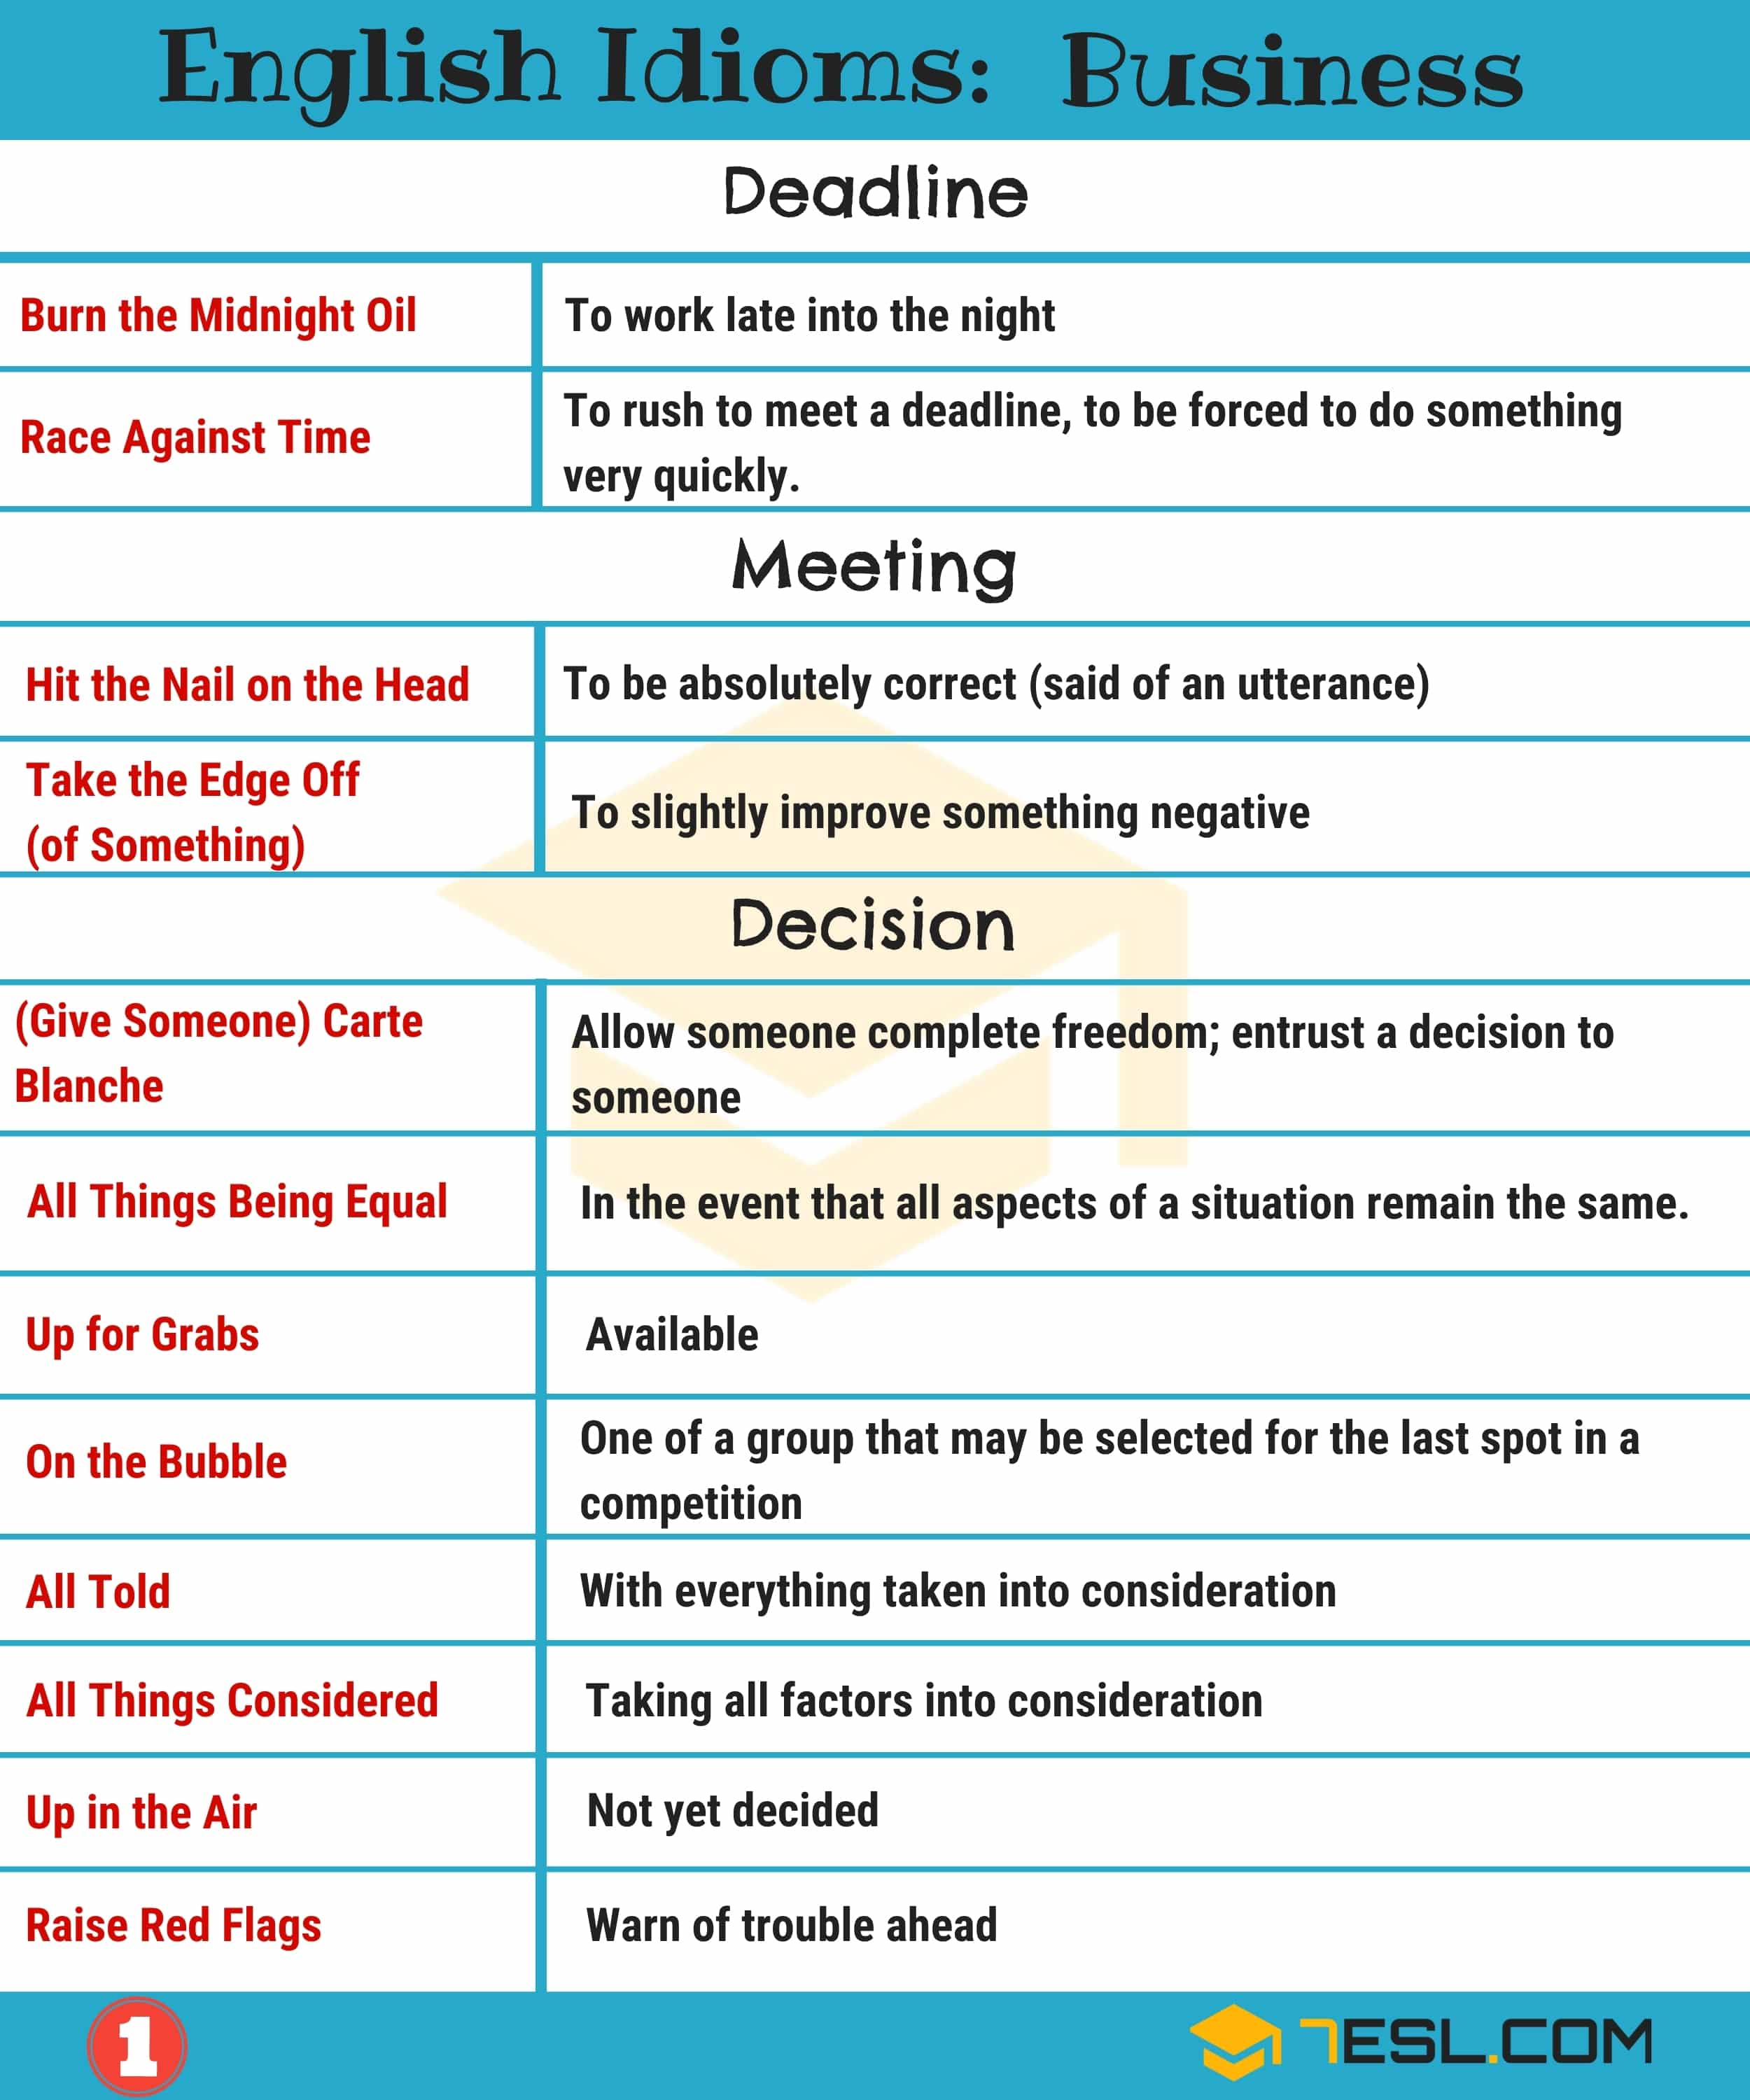 Business Idioms with Meaning | Image 1